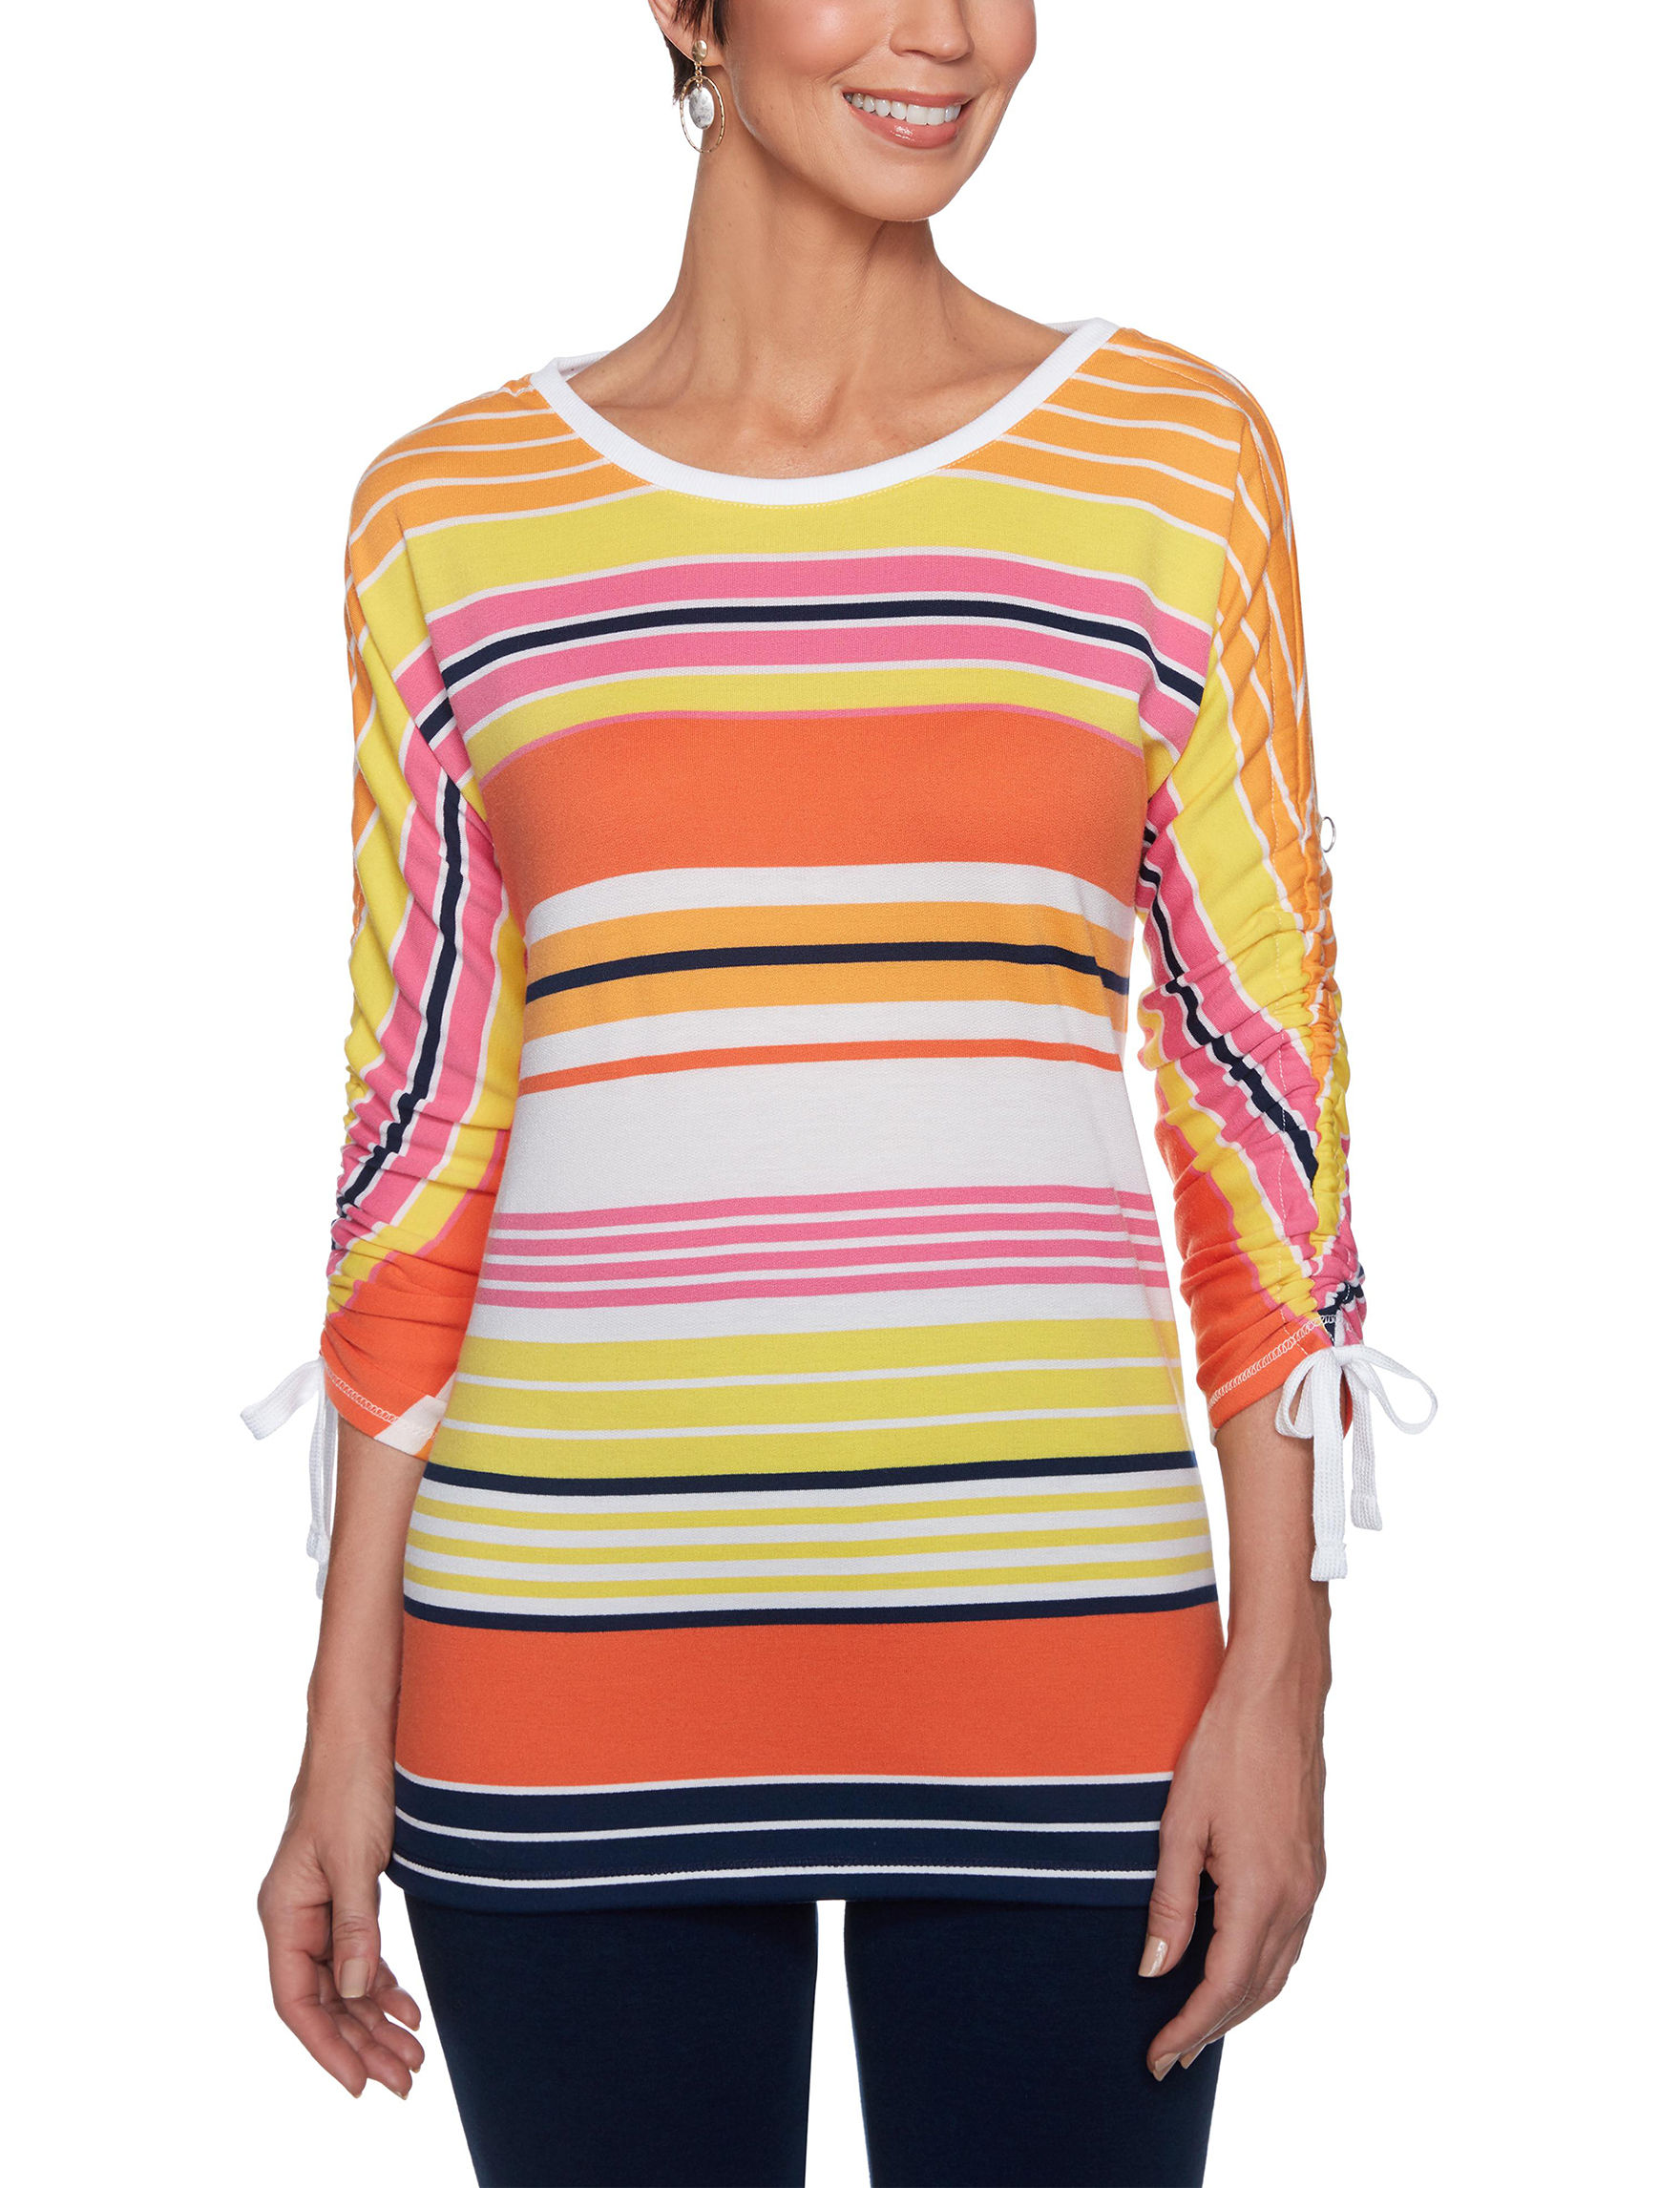 Ruby Road Orange Multi Pull-overs Shirts & Blouses